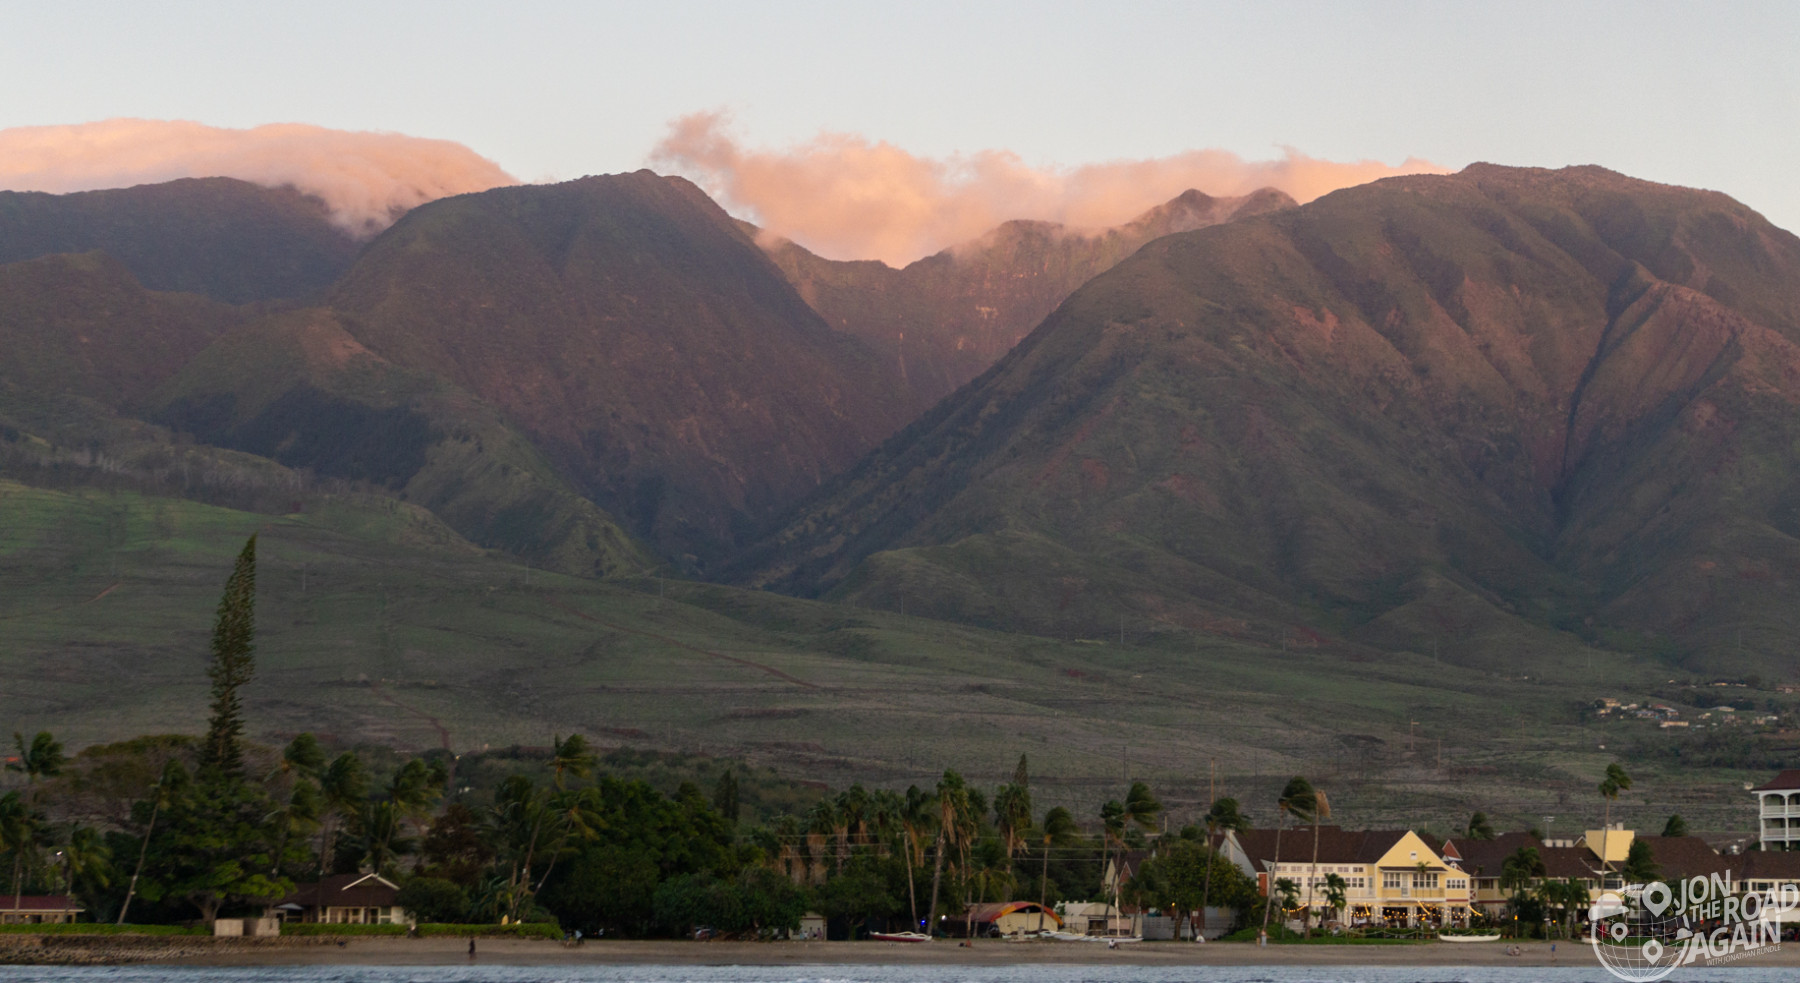 Maui mountains at sunset